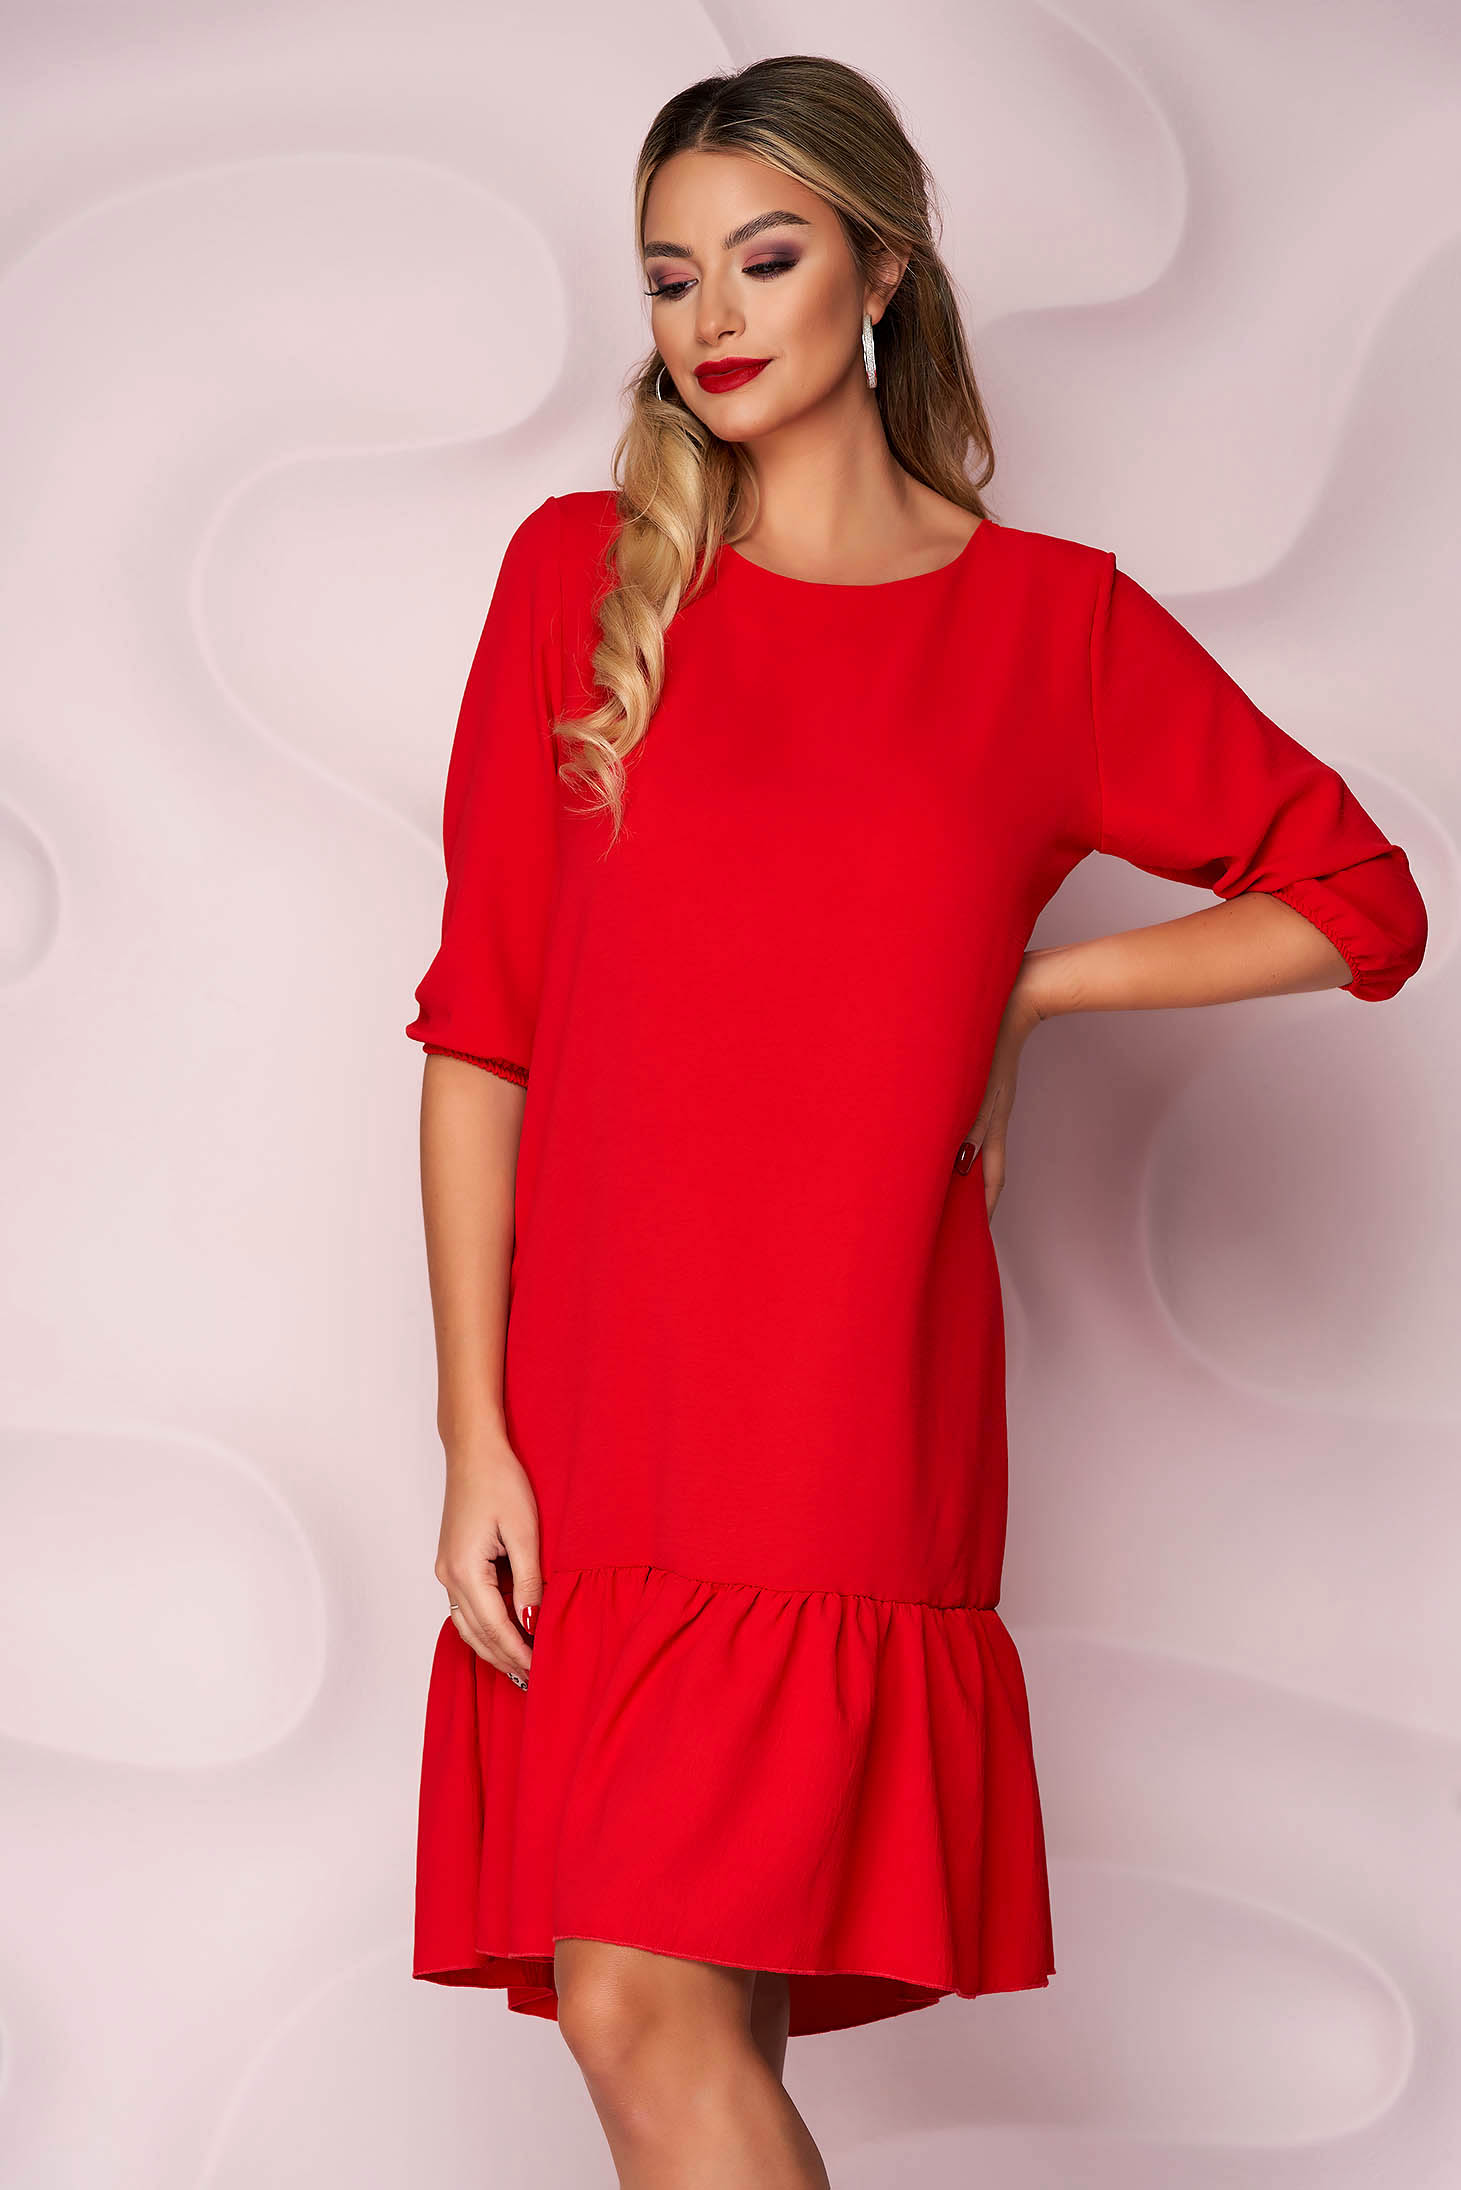 Red dress with ruffle details from veil fabric loose fit with 3/4 sleeves